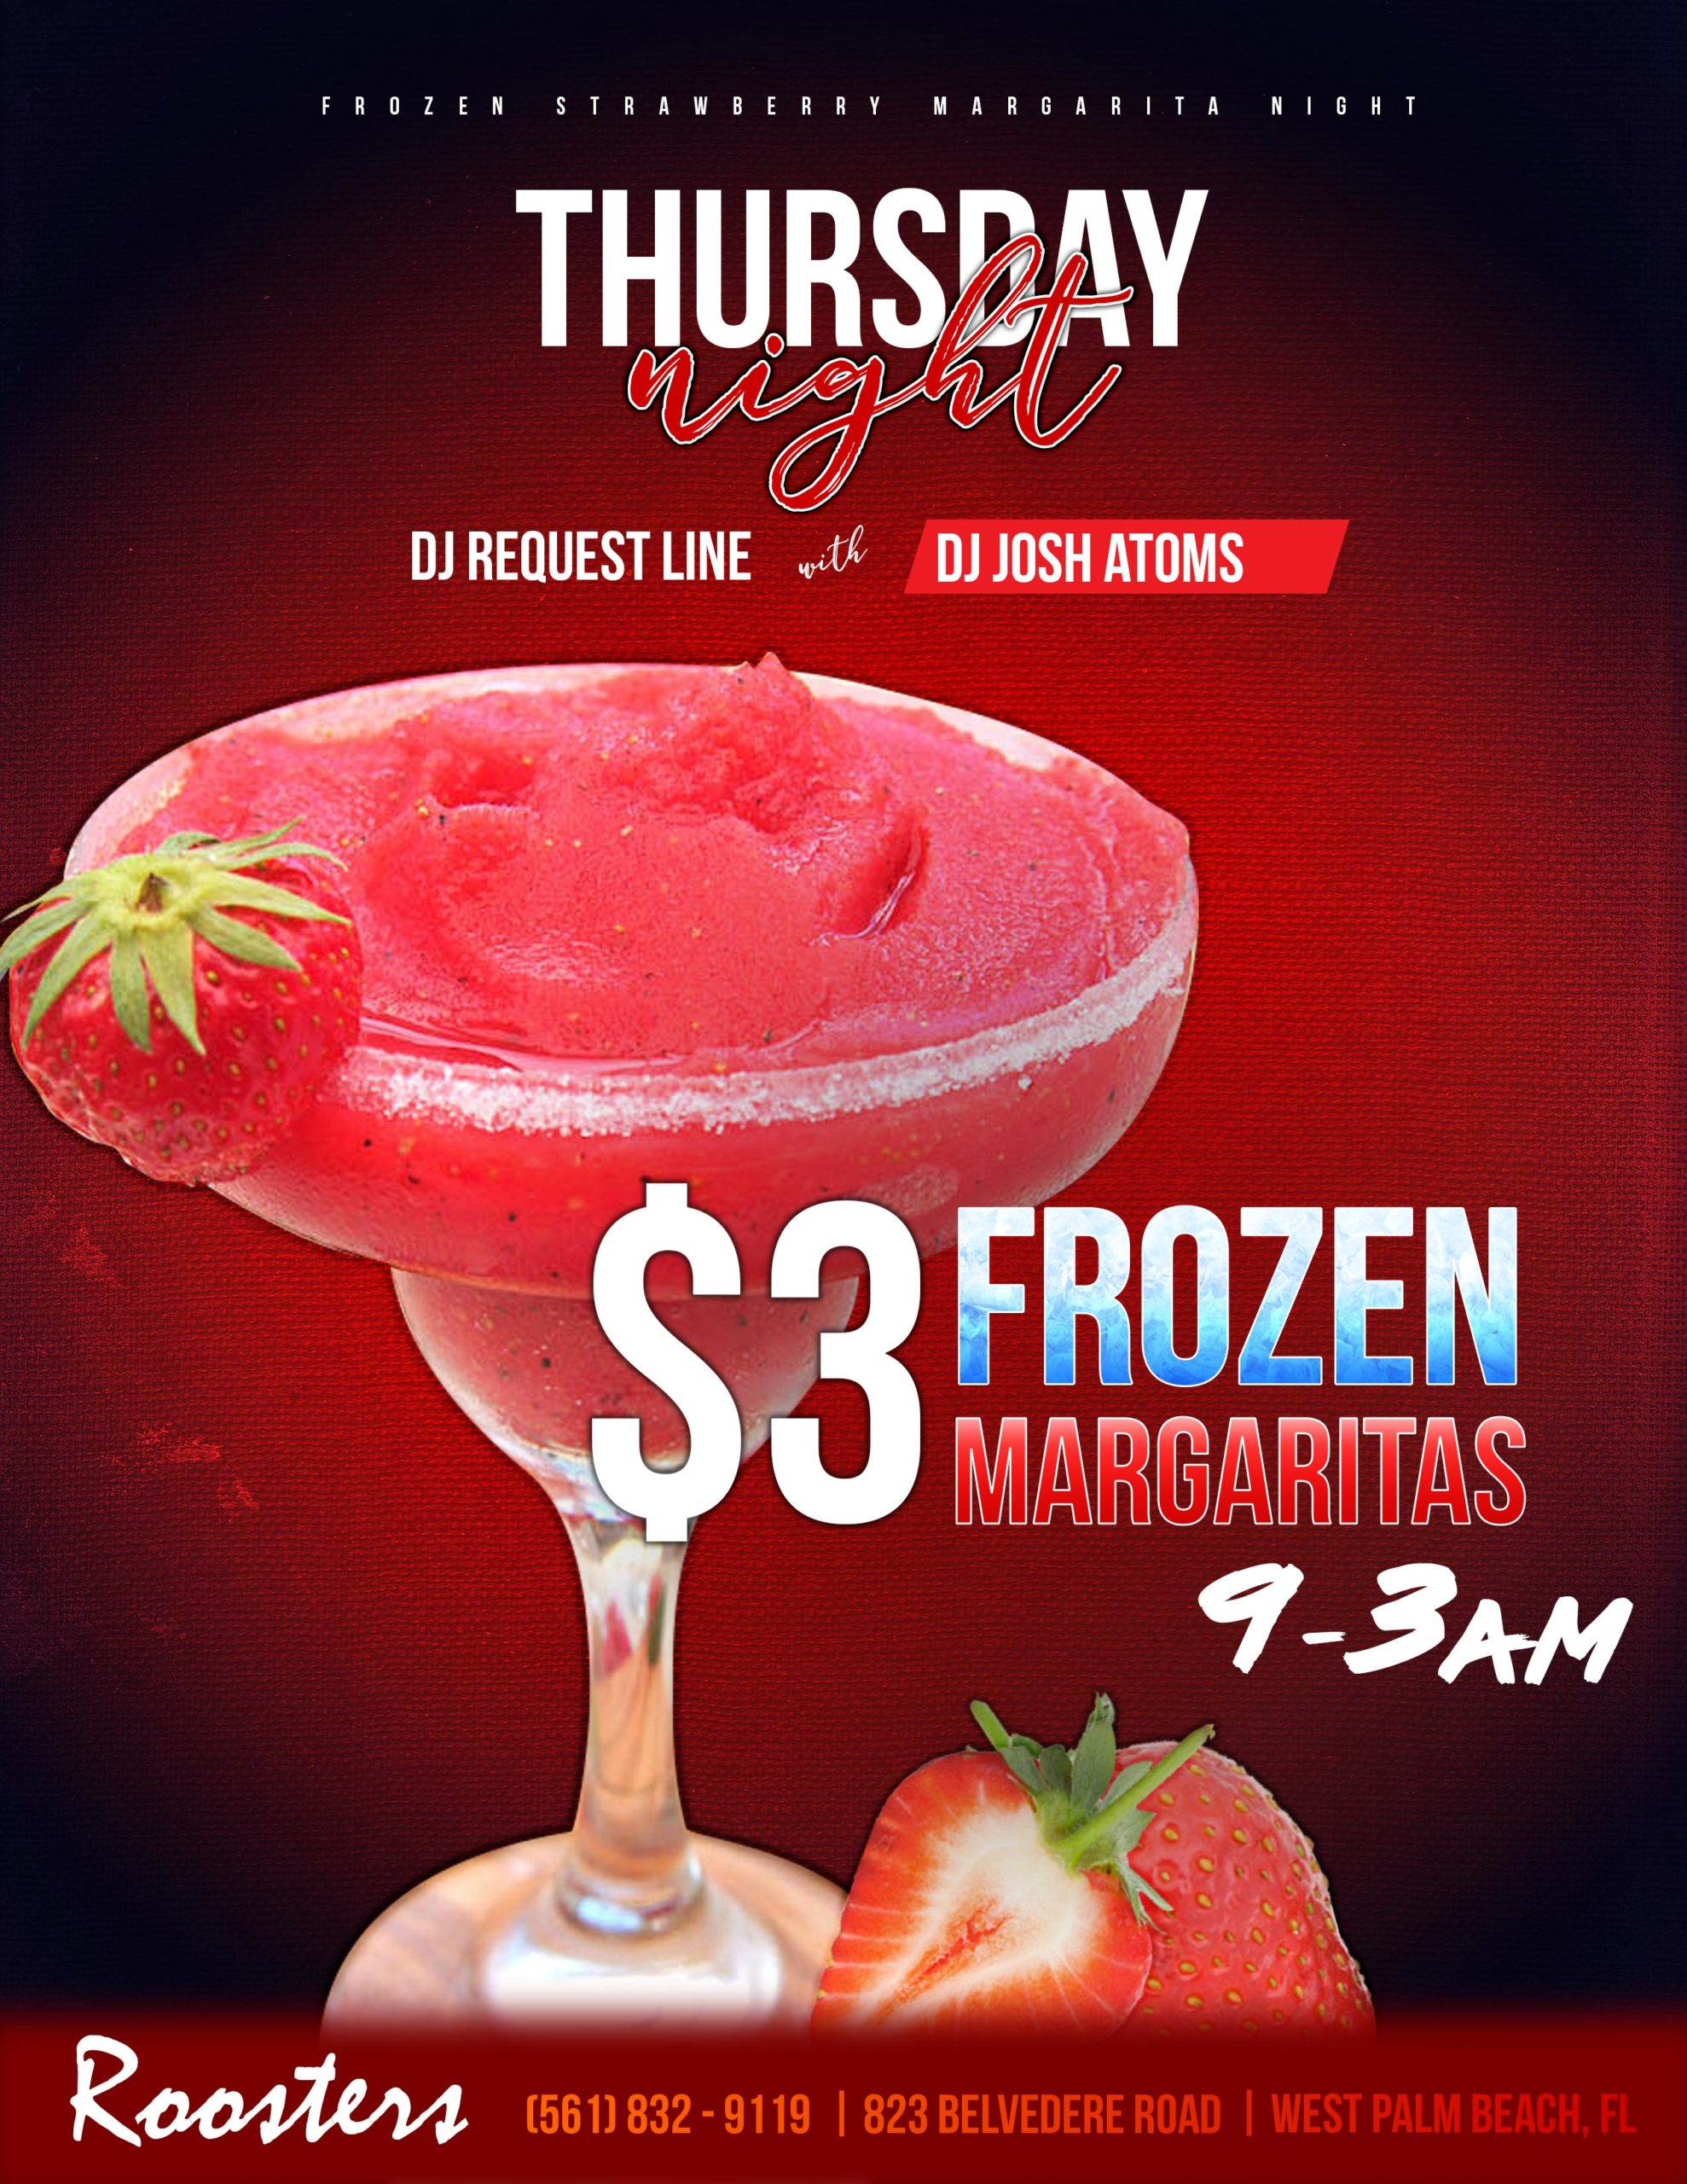 2020-roosters-thursday-flyer